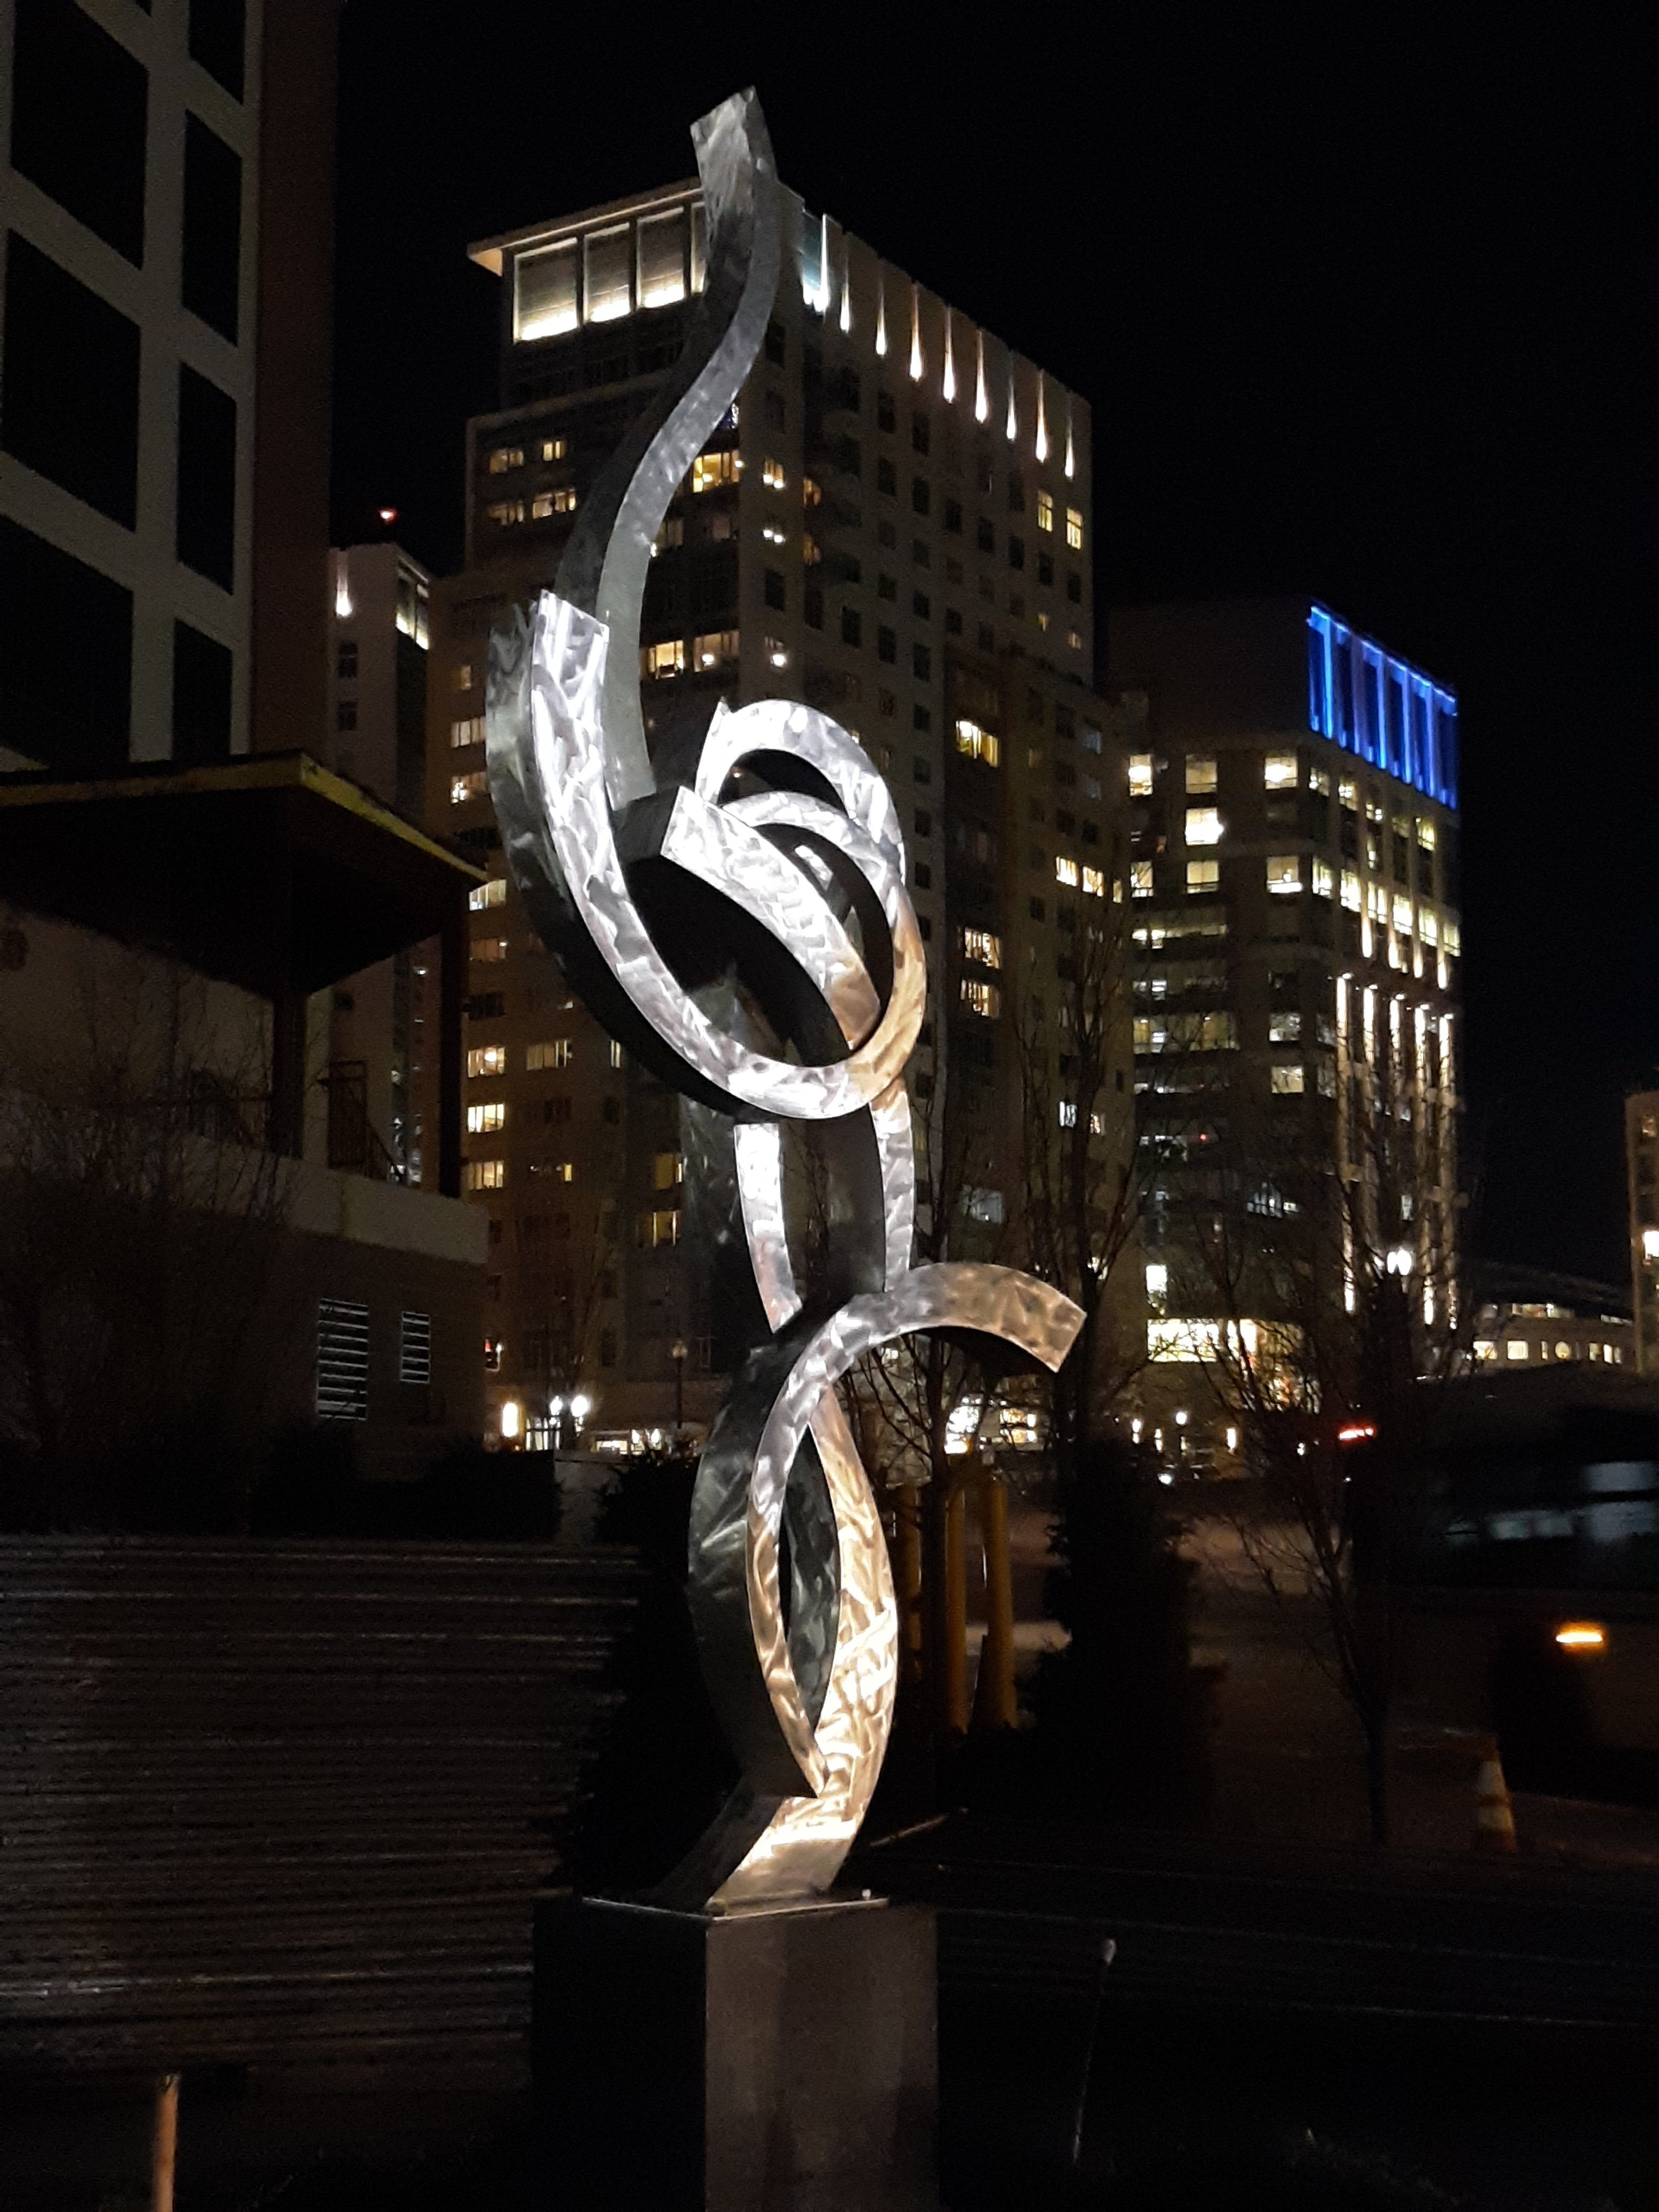 Paul Machalaba; SOLD Commissions Available, 2019, Original Sculpture Aluminum, 4 x 13 feet. Artwork description: 241 13 foot polished fluid abstract commissions available for corporate or residential spaces.  Projects can be designed and built in a similar style to your exact wishes. ...